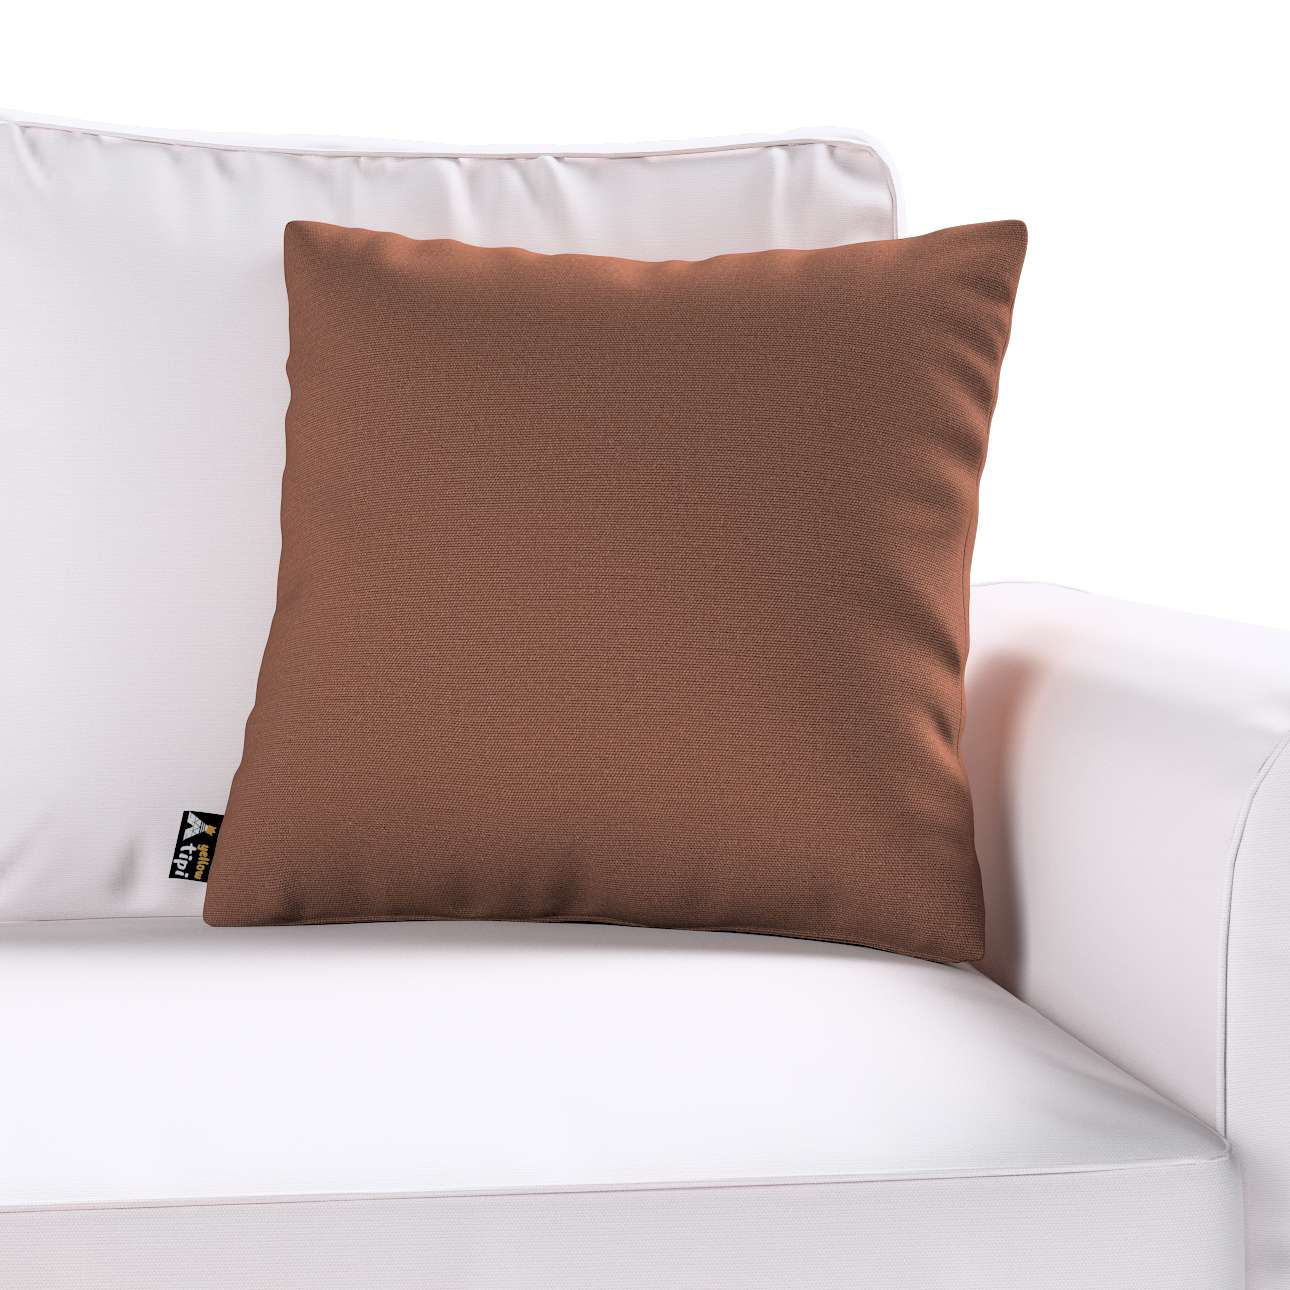 Milly cushion cover in collection Happiness, fabric: 133-09